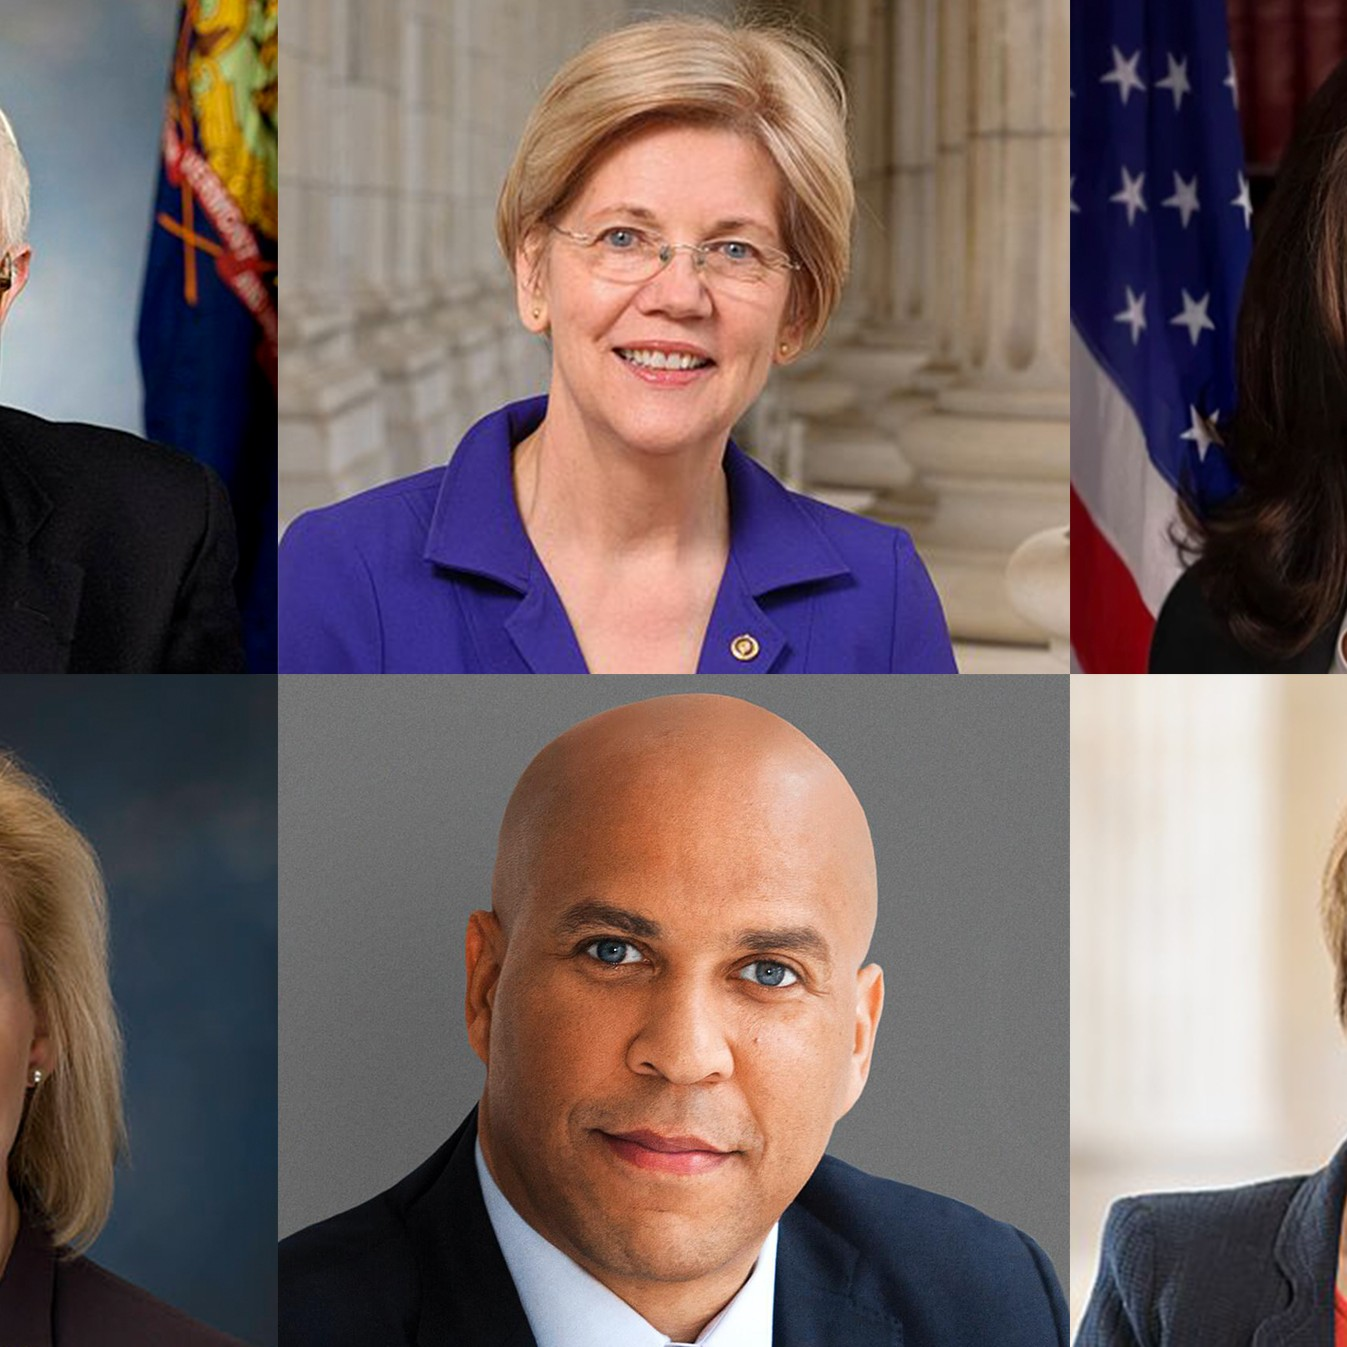 If Democratic Frontrunners Cant Stop >> The 2020 Democratic Frontrunners Need To Answer For Their Votes On